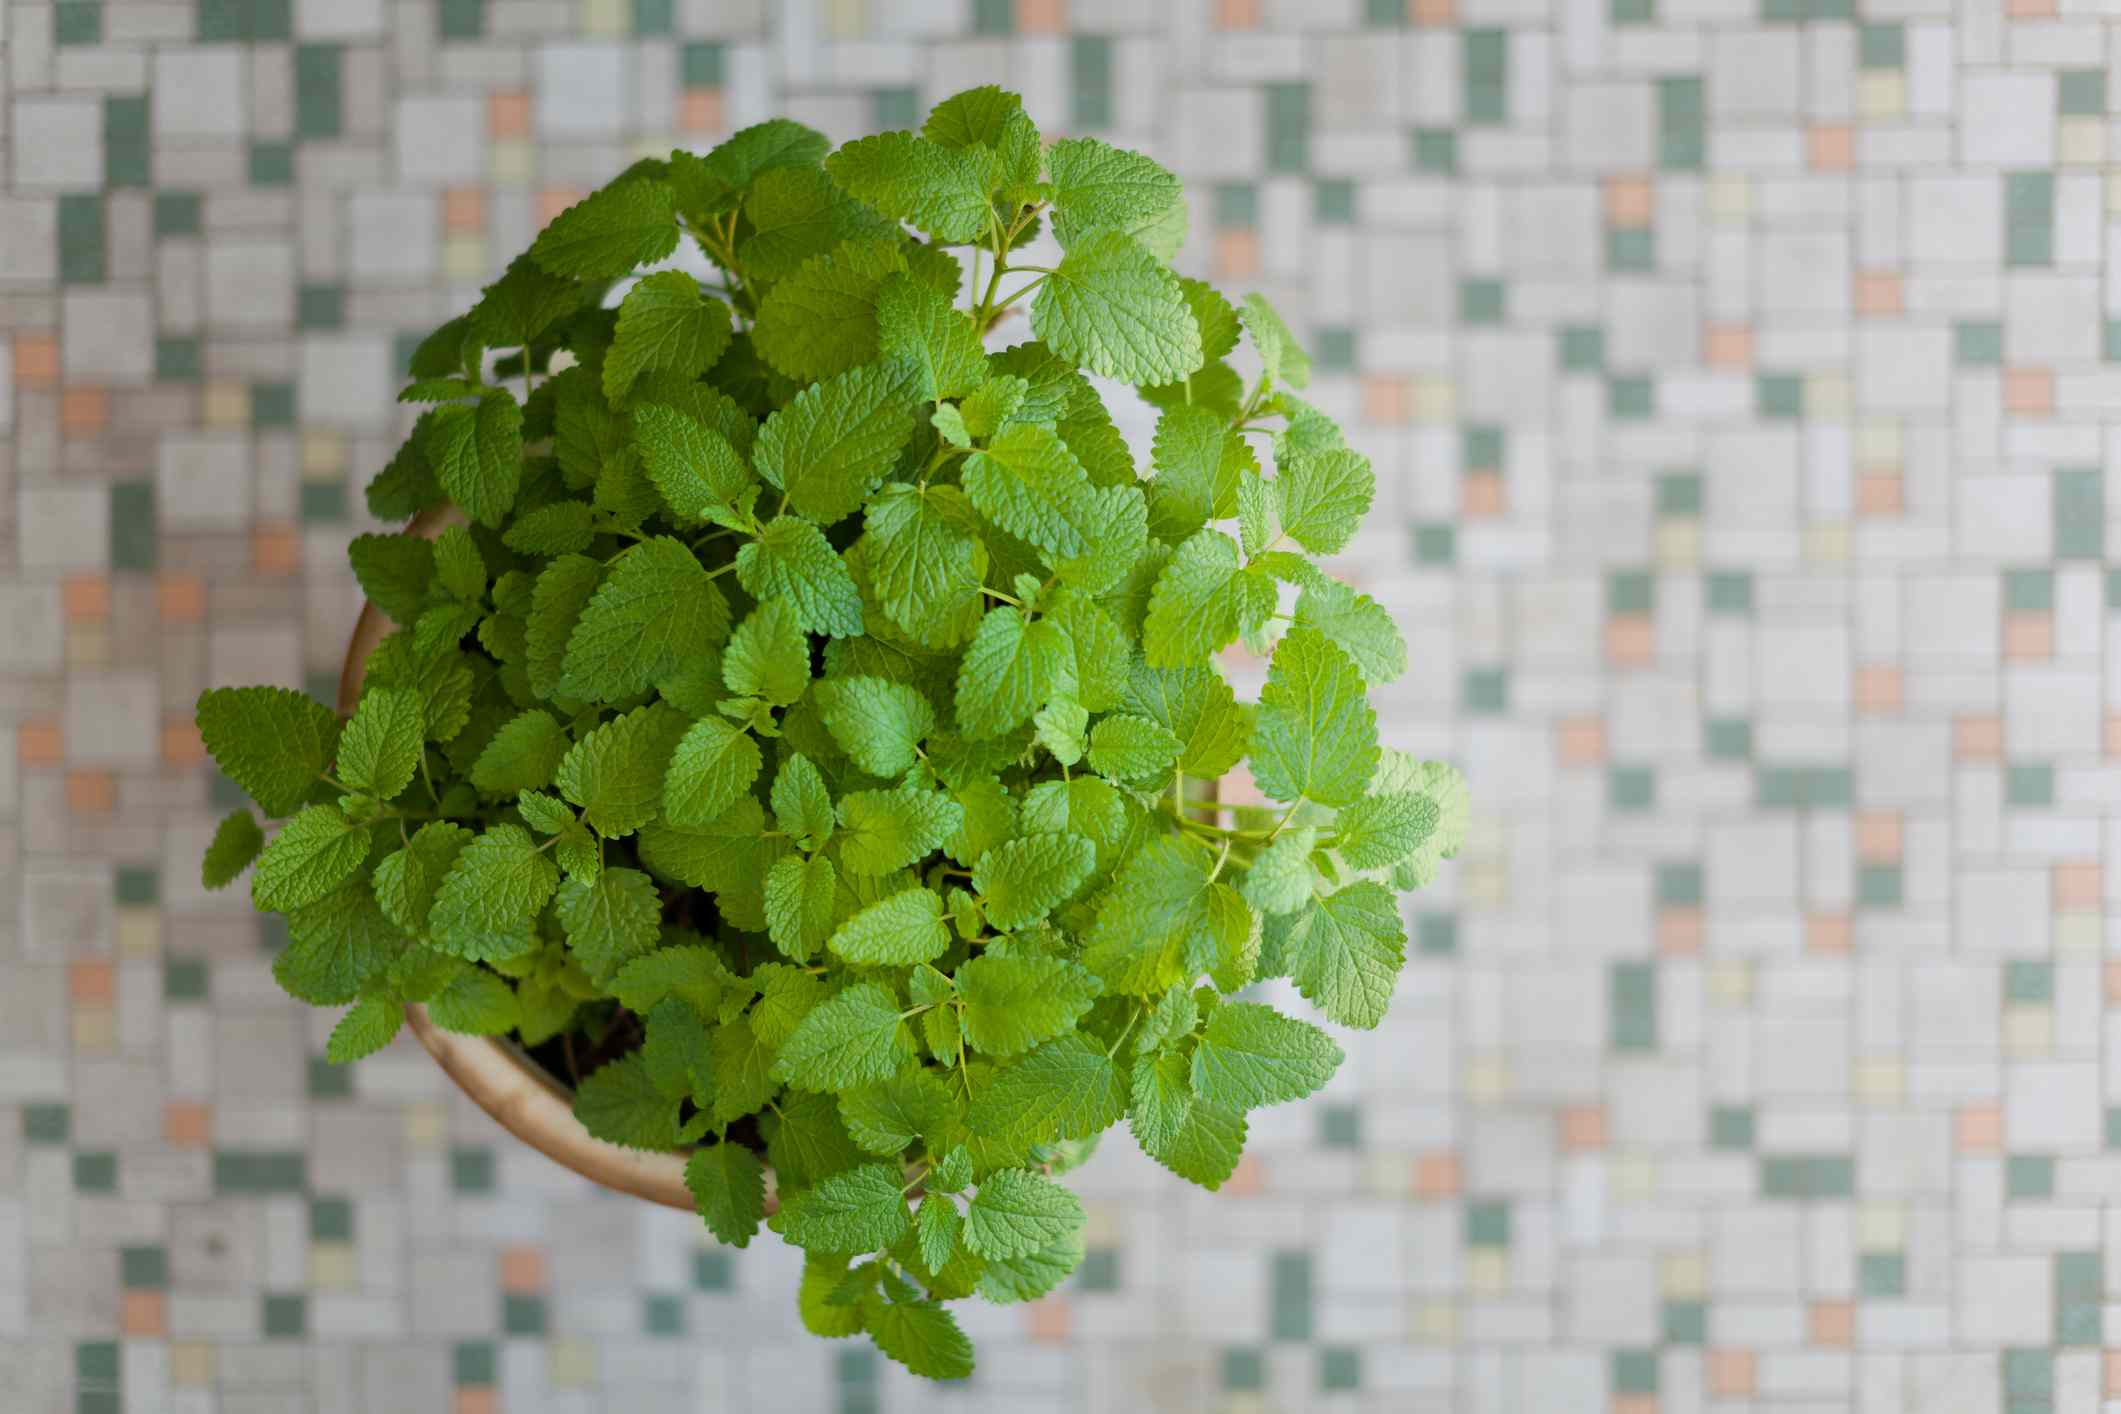 Lemon balm in a planter sitting on a tiled surface.